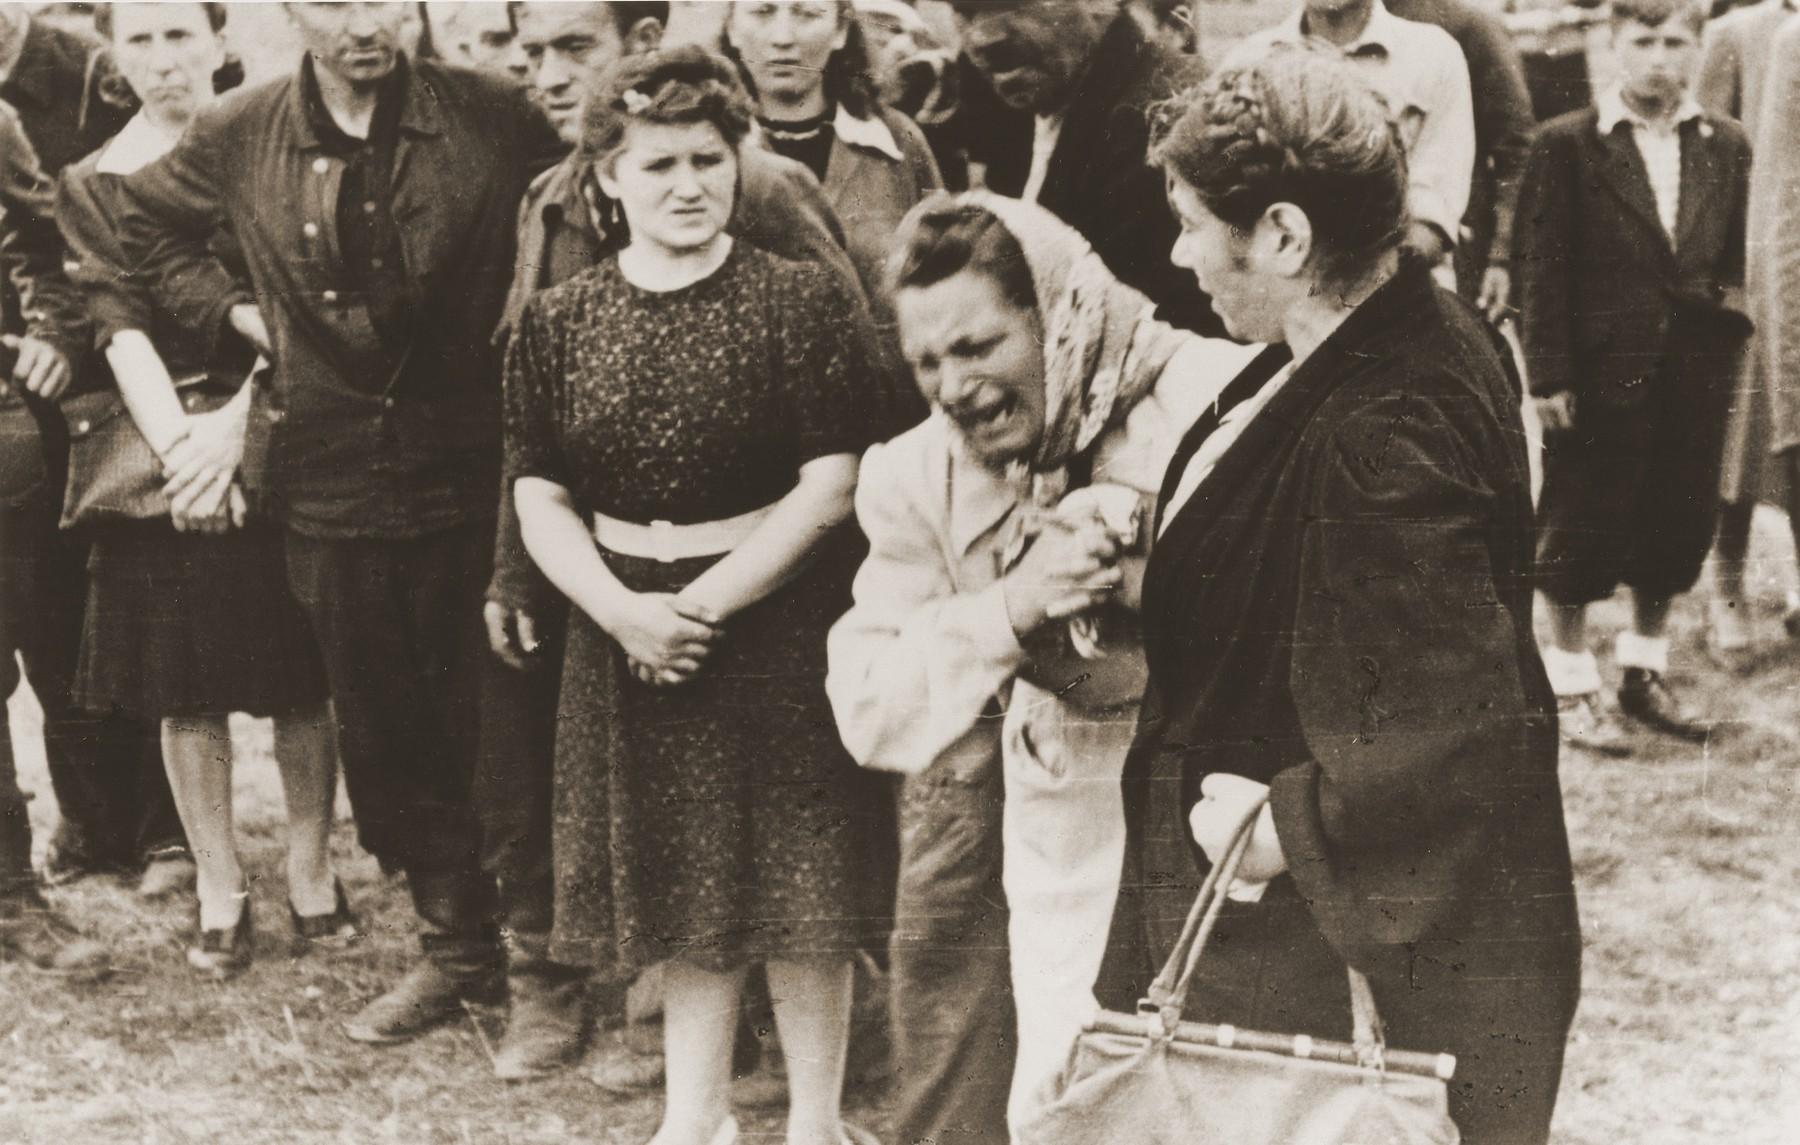 A woman cries in grief for the loss of her husband and other victims of the Kielce pogrom during the public burial.